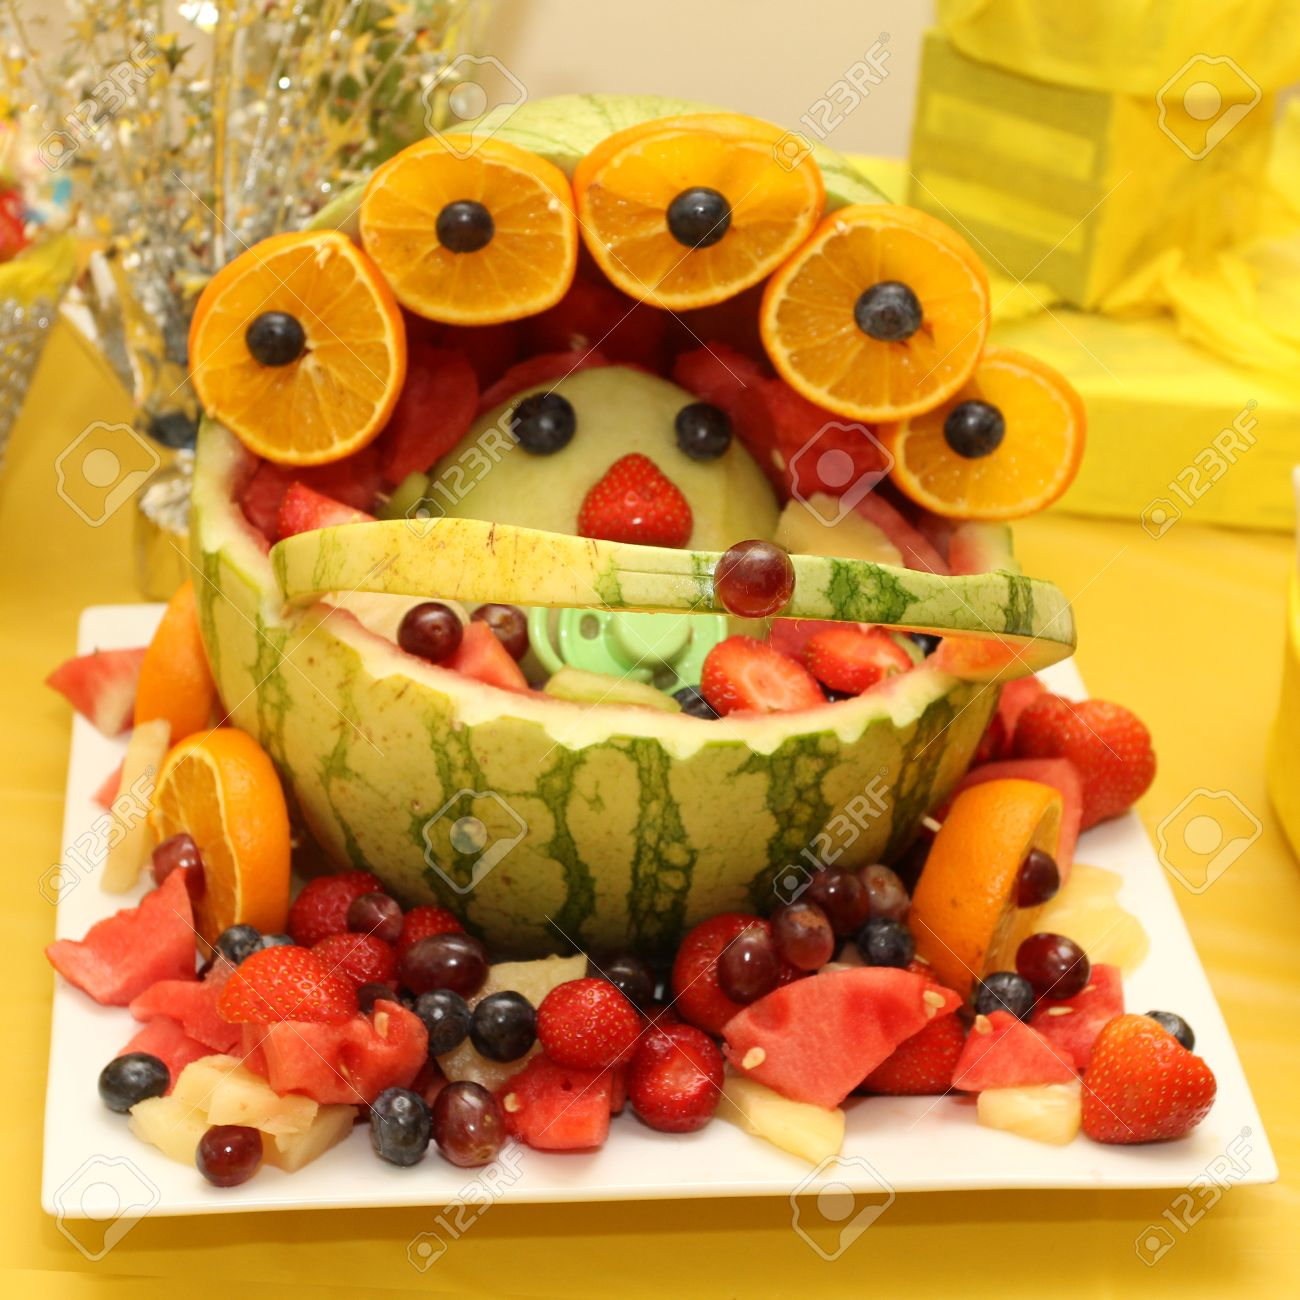 Fruit Basket Art Shaped As A Baby For Baby Shower Stock Photo   32623895